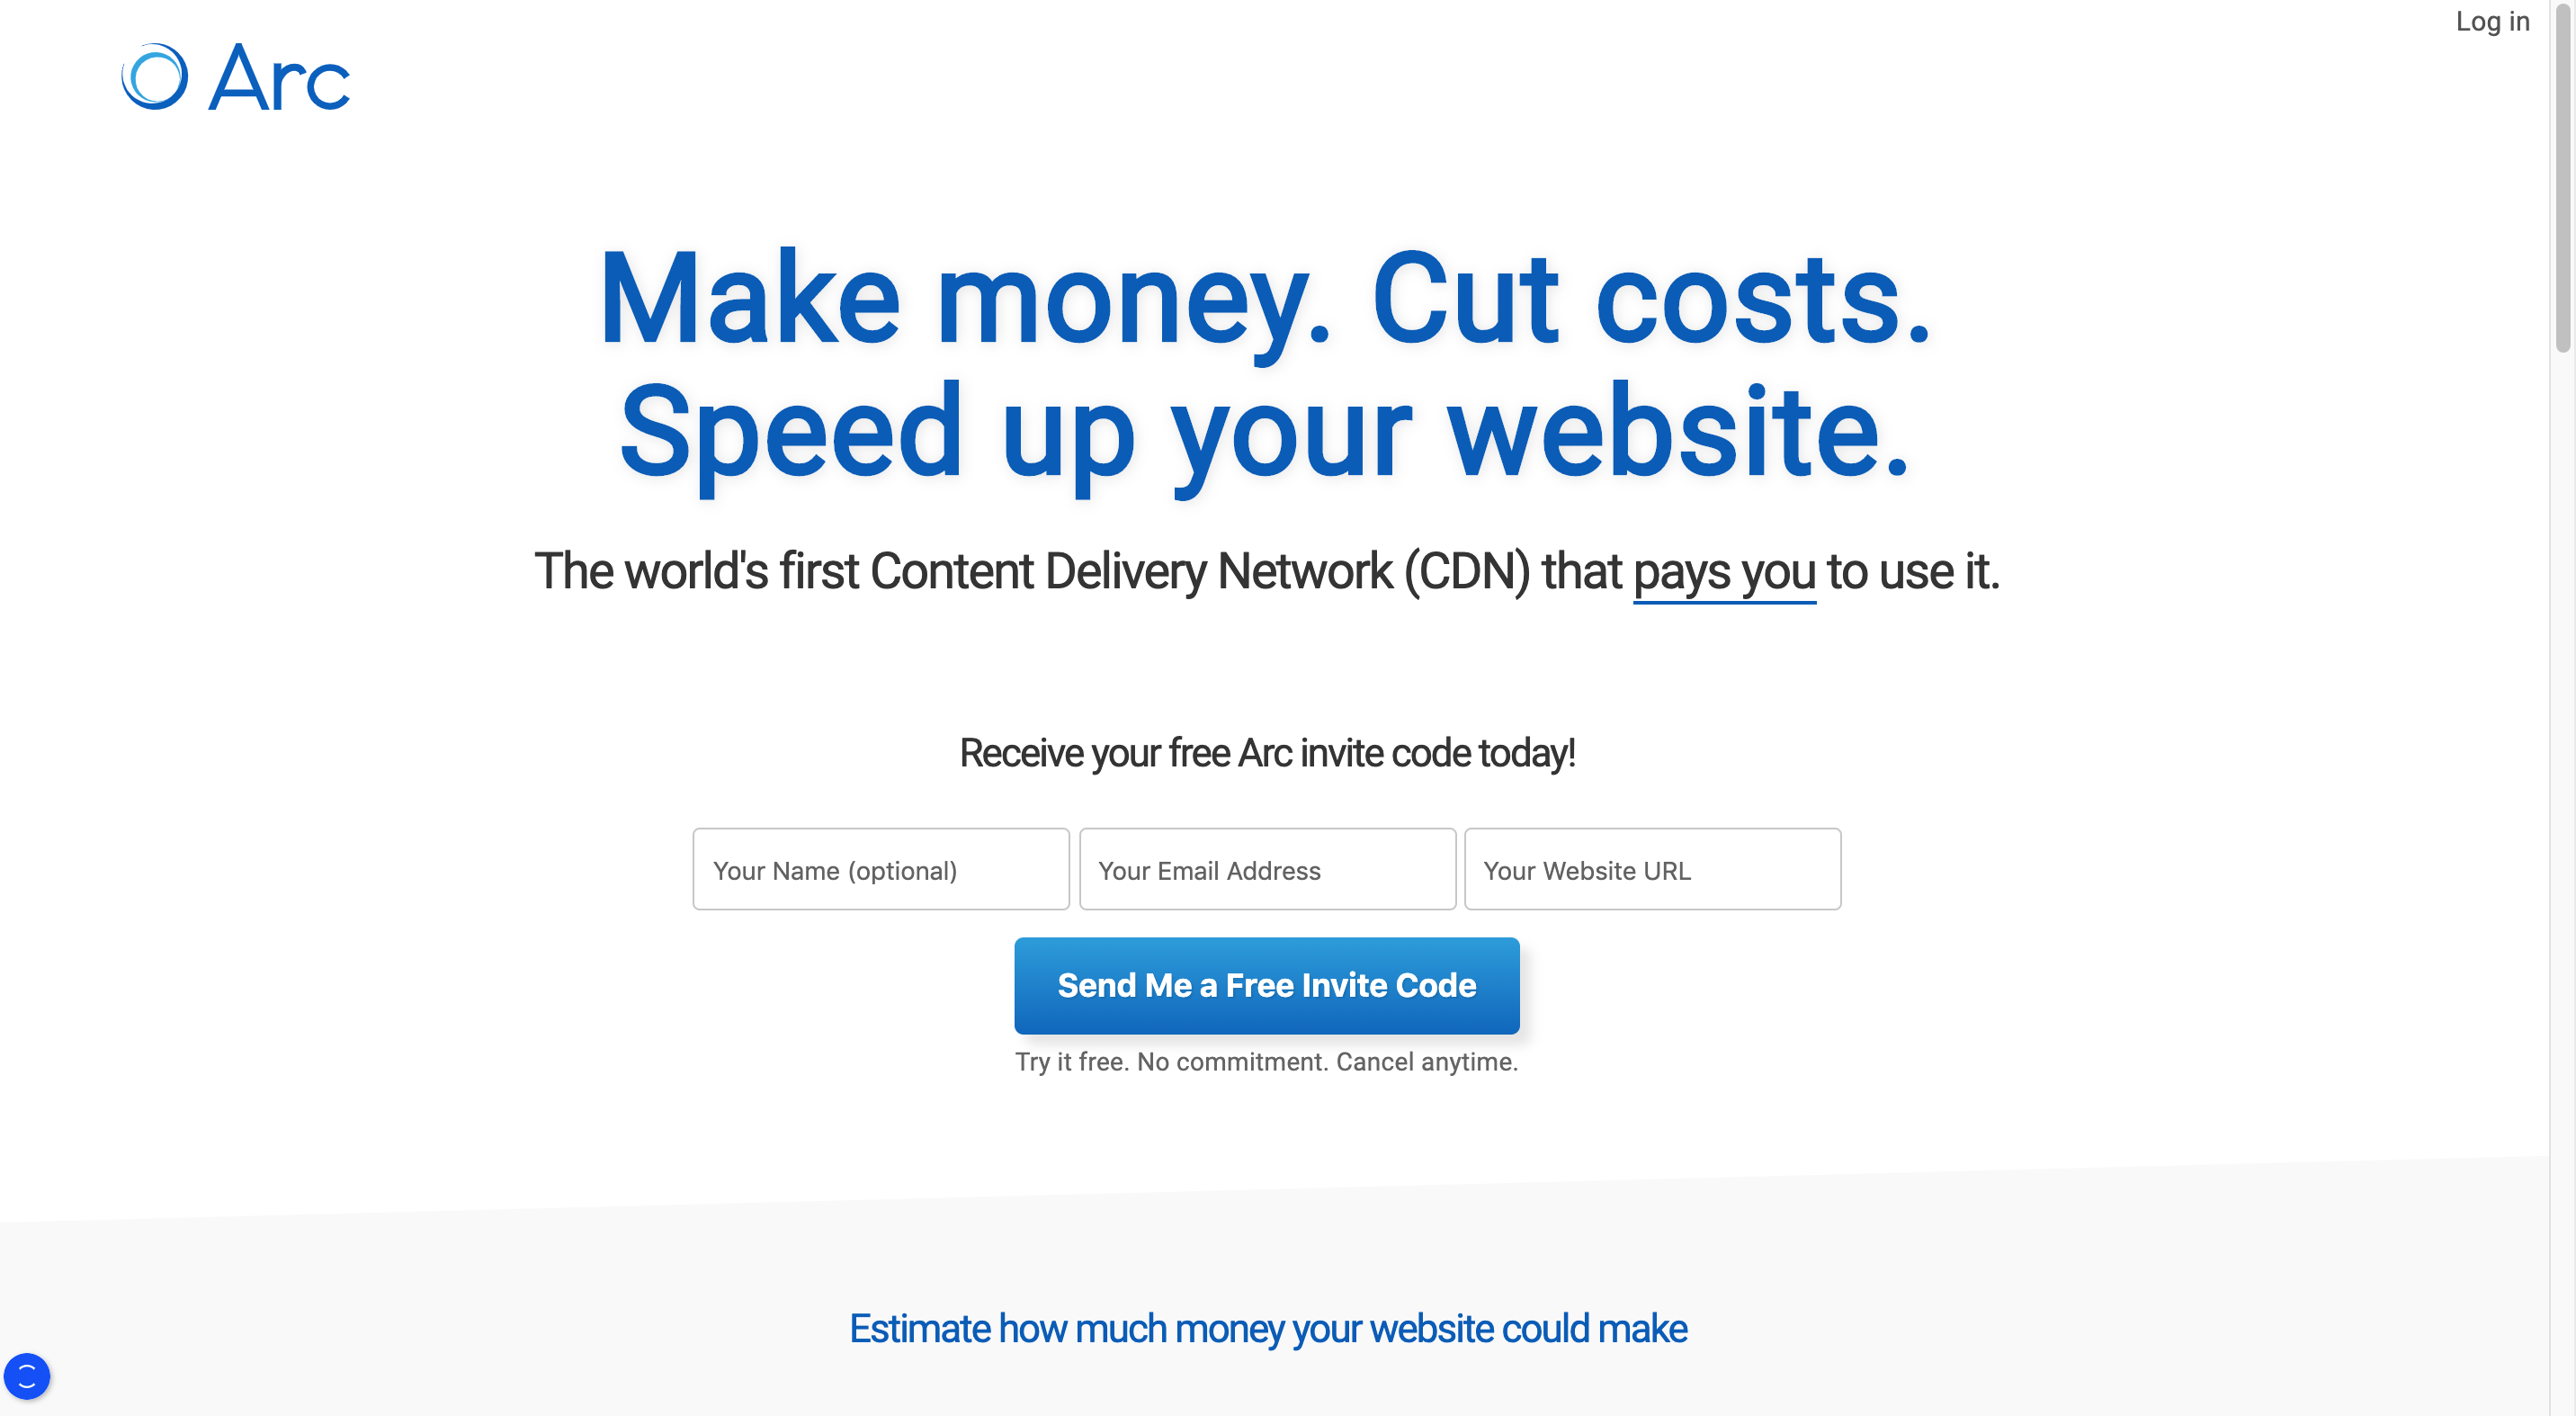 Monetize your website with Arc